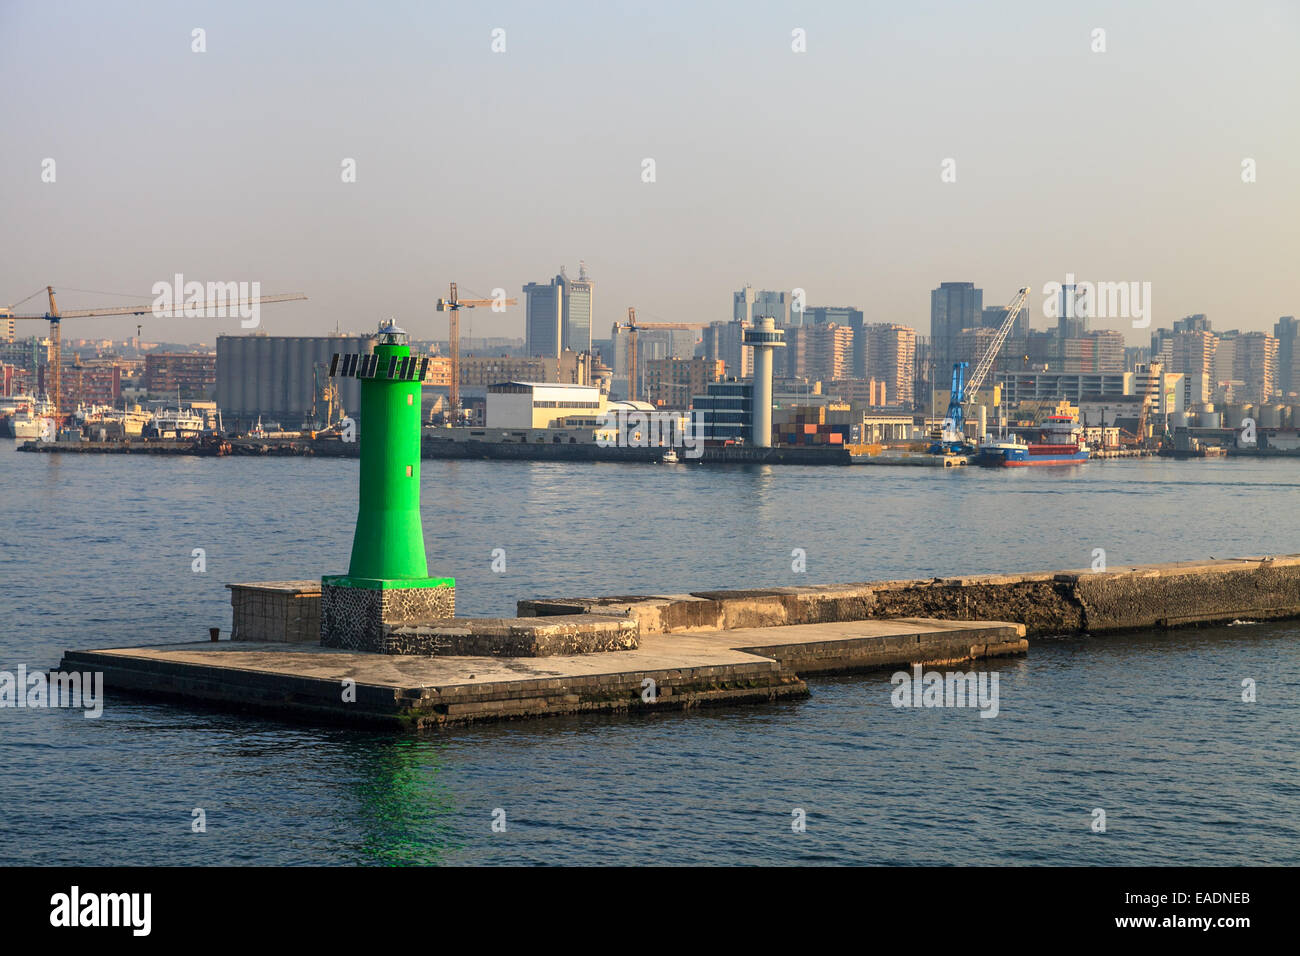 The port of Naples - Stock Image